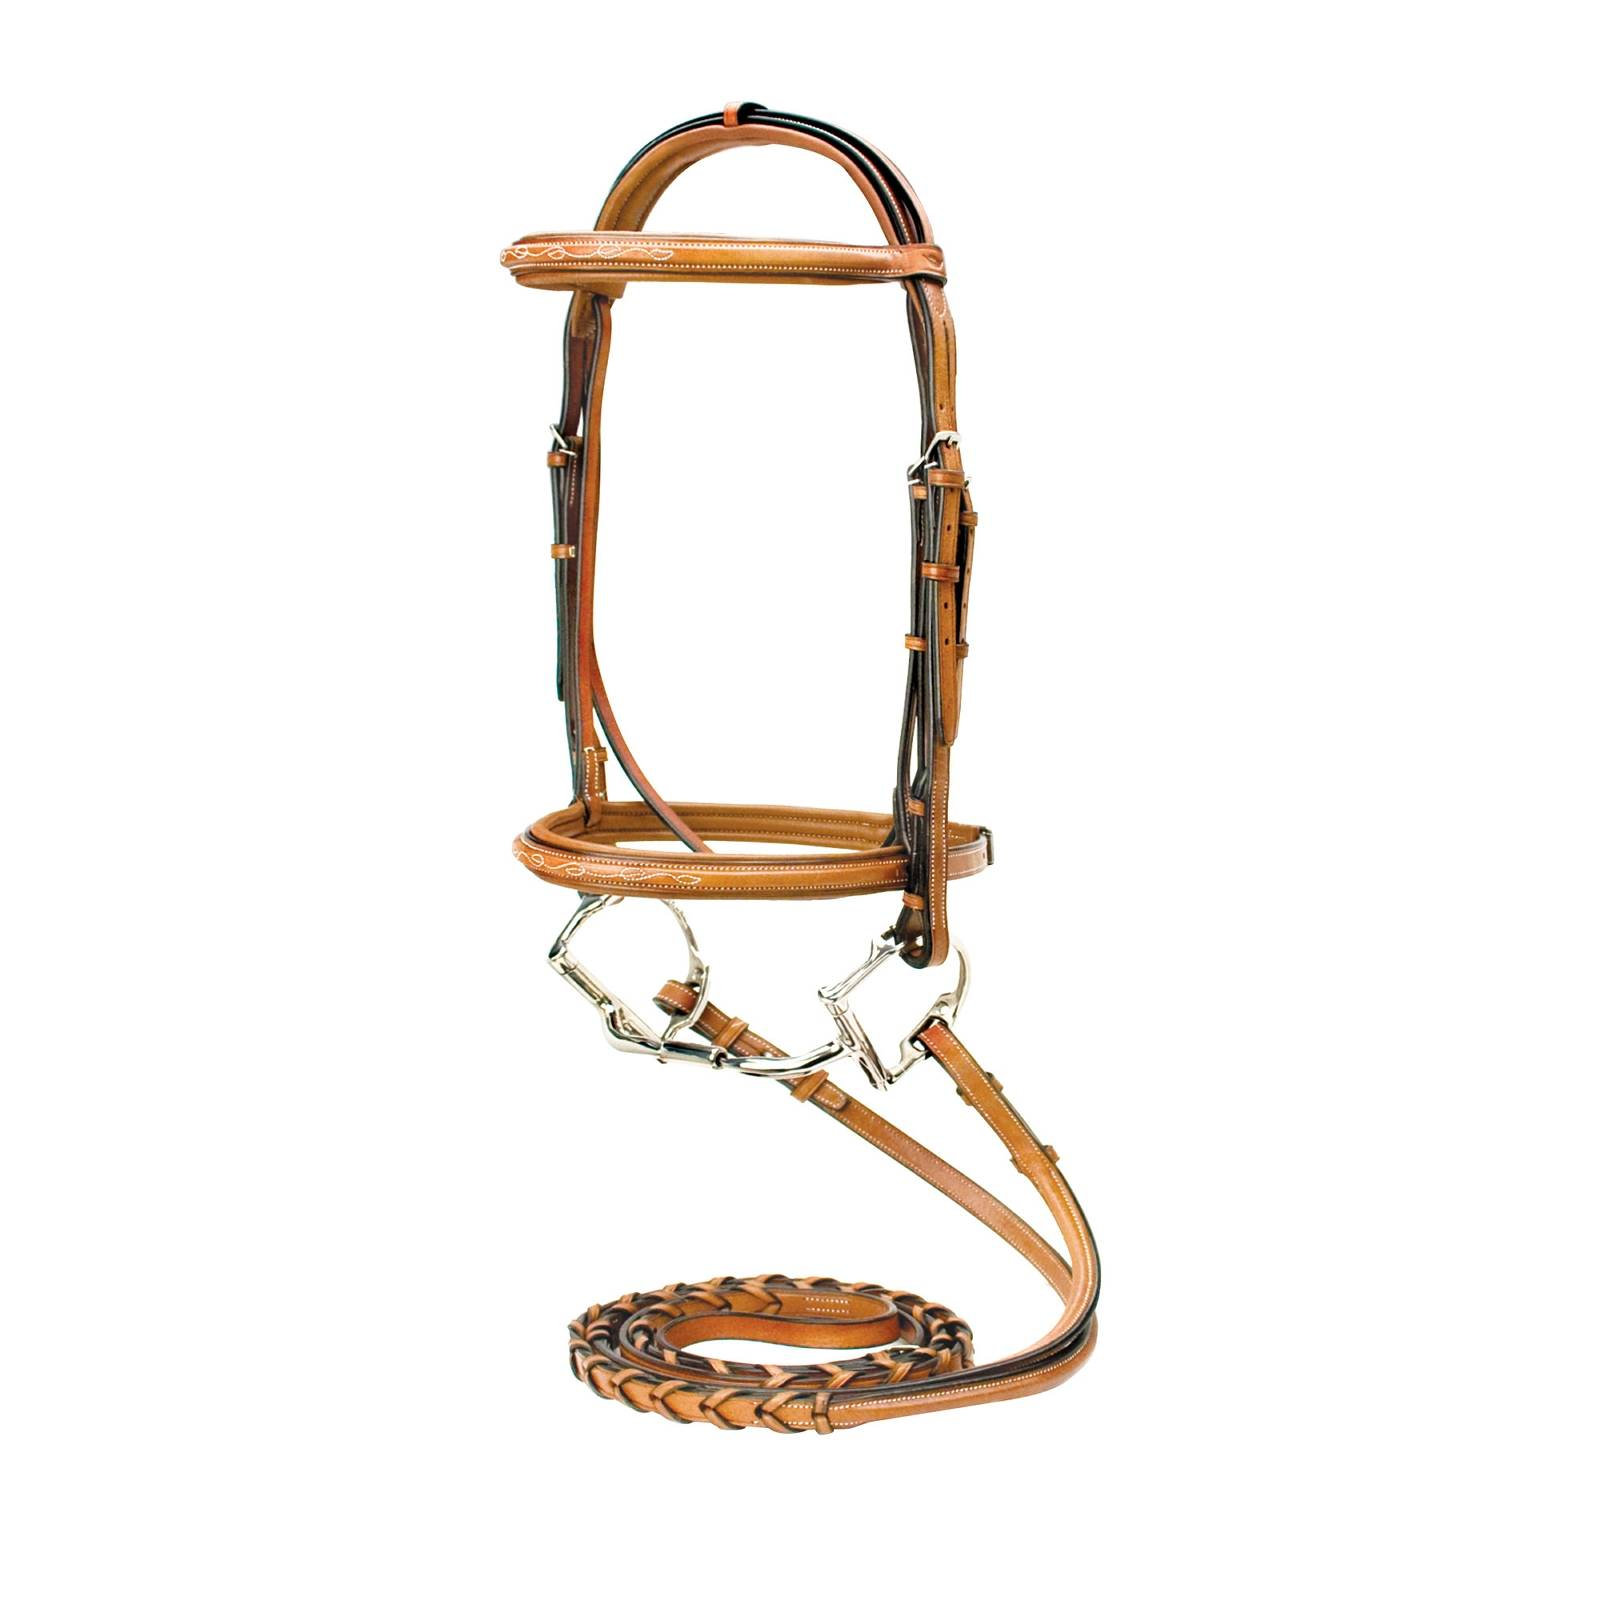 Silverleaf Fancy Square Raised Bridle w/Reins